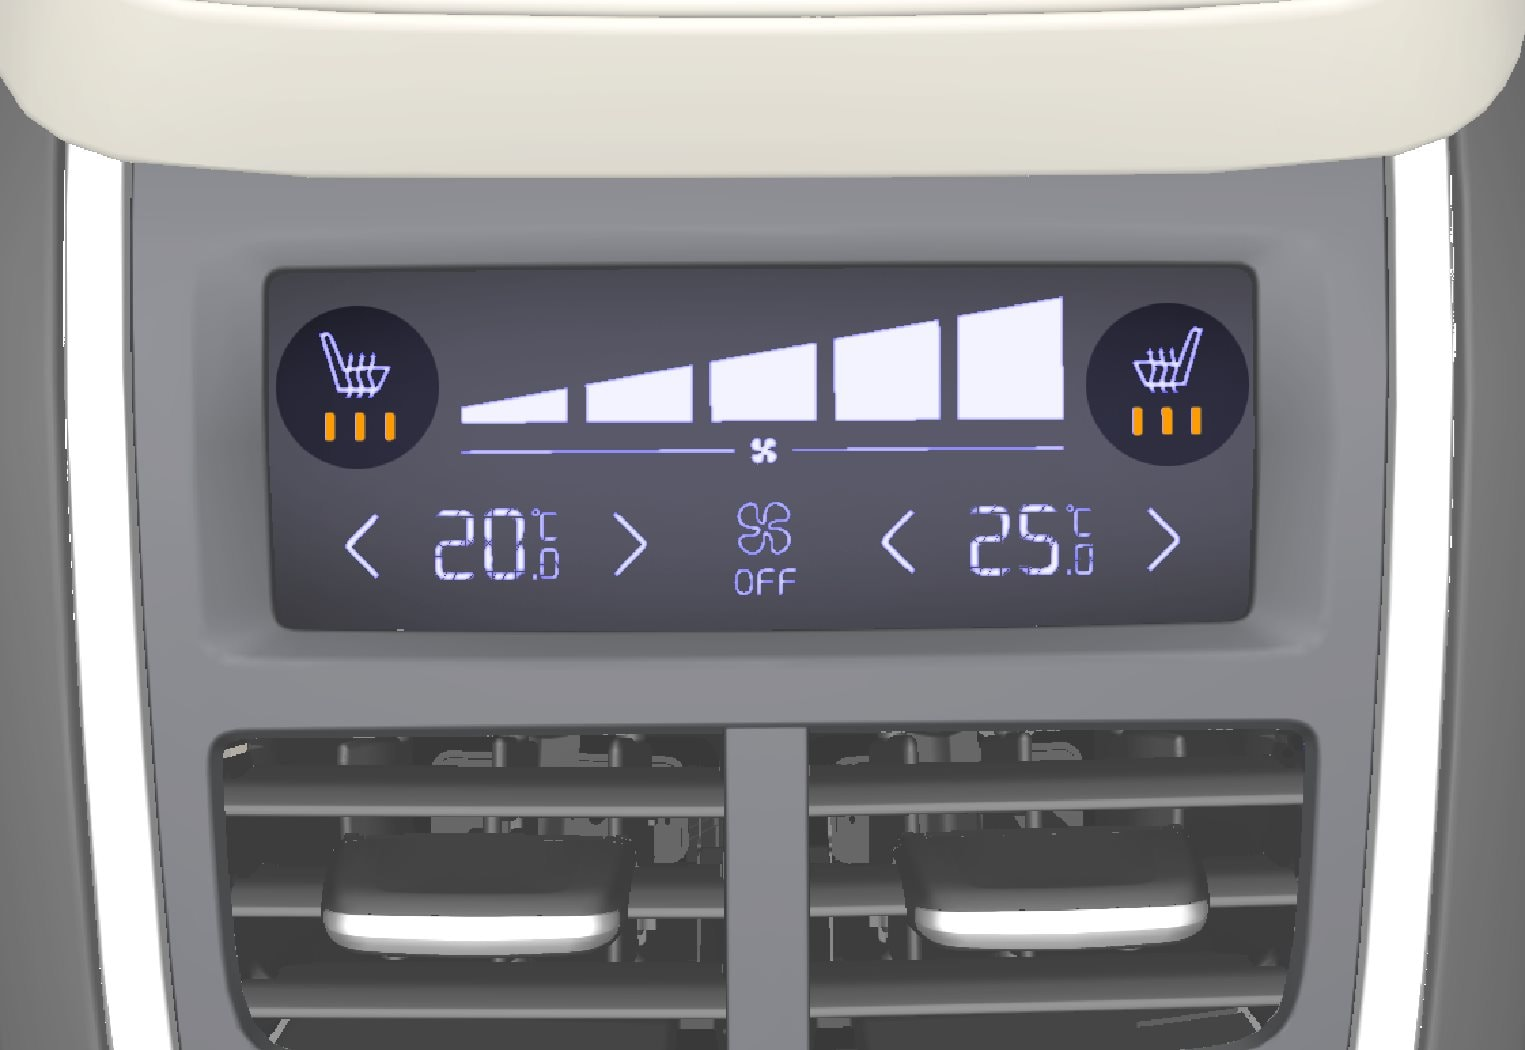 Seat heating indication and controls on the climate panel at the rear of the tunnel console.